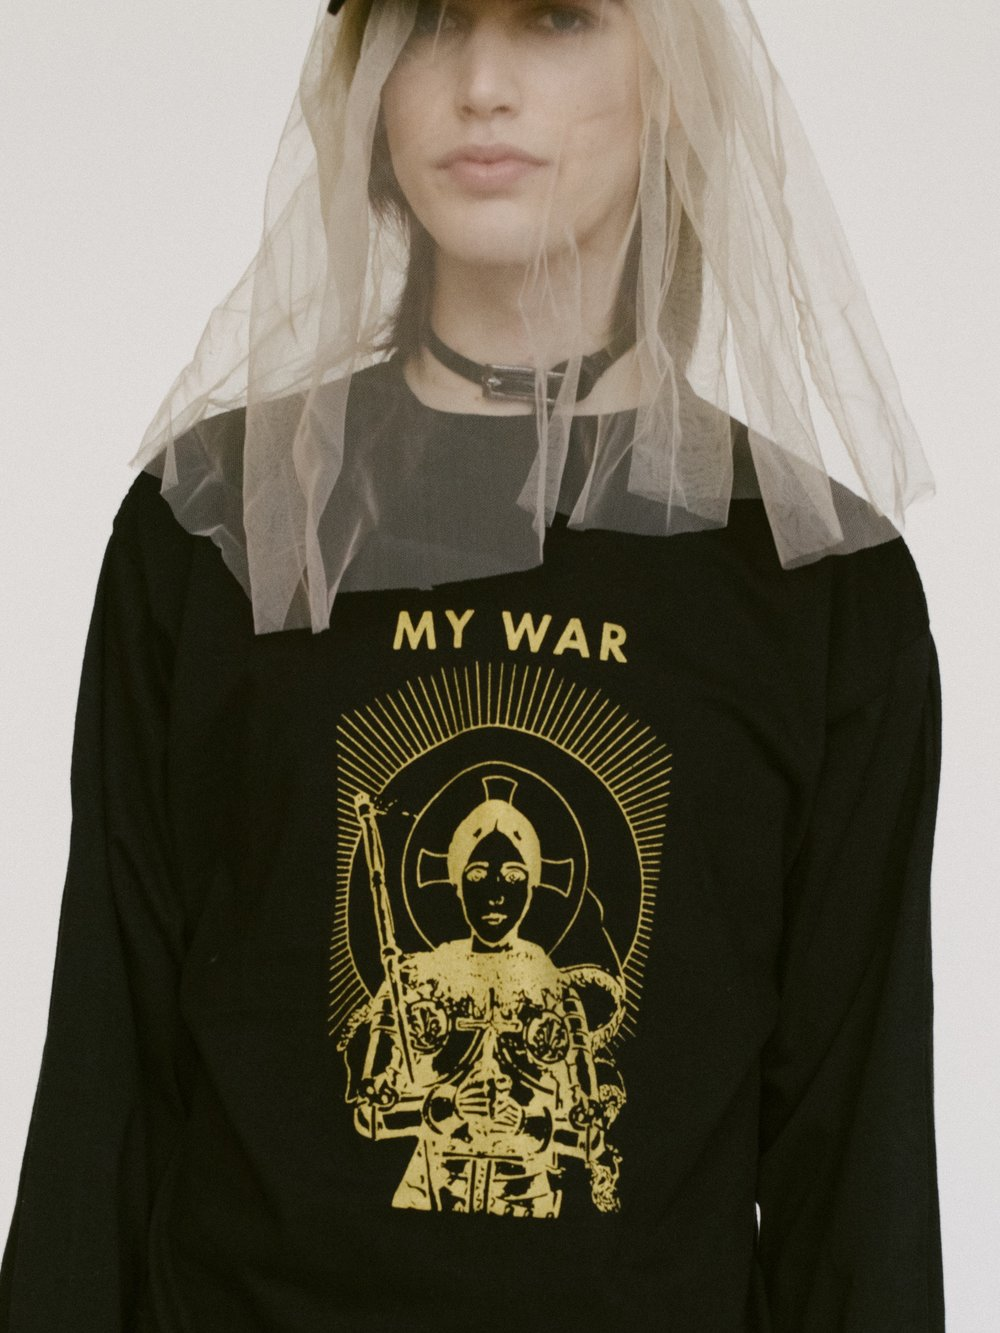 AW17 AVIE MY WAR FRONT CLOSE .jpg